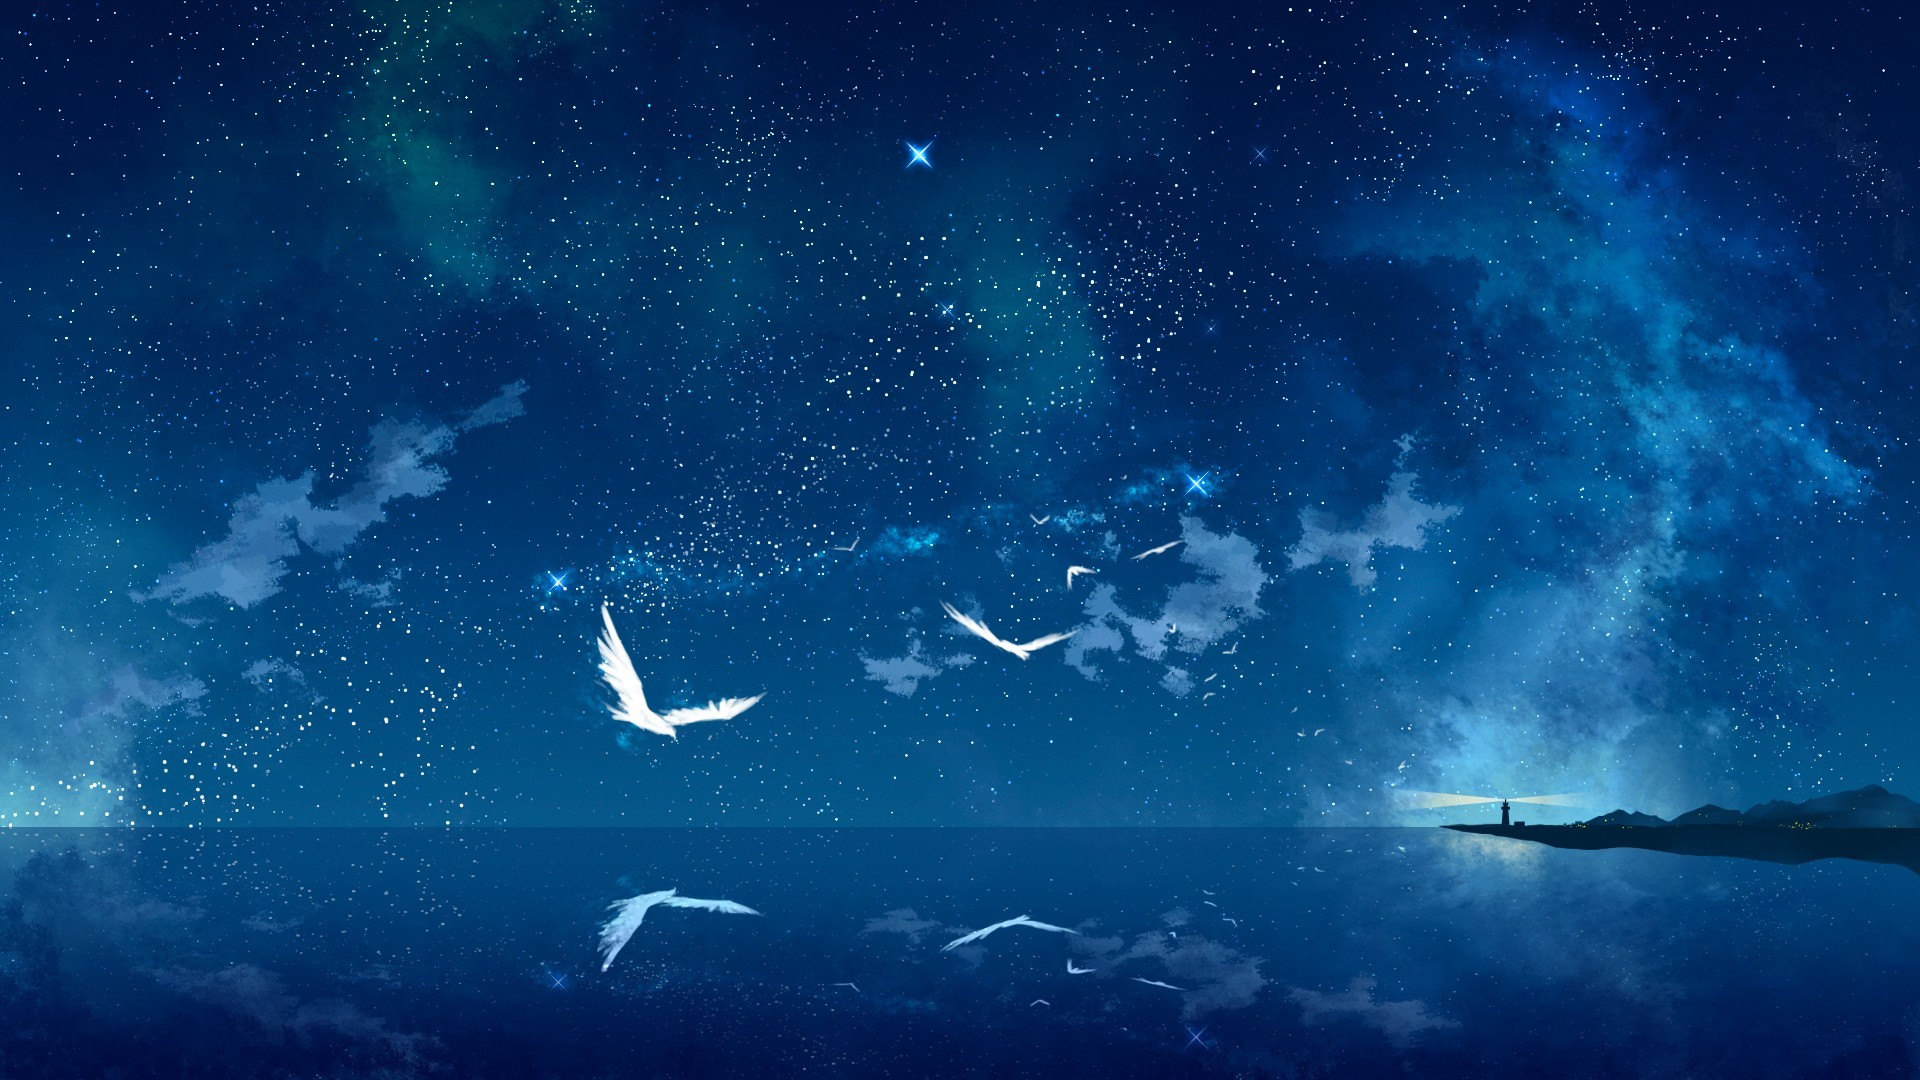 Night Sky Wallpaper night sky background wallpapers win10 themes #7046